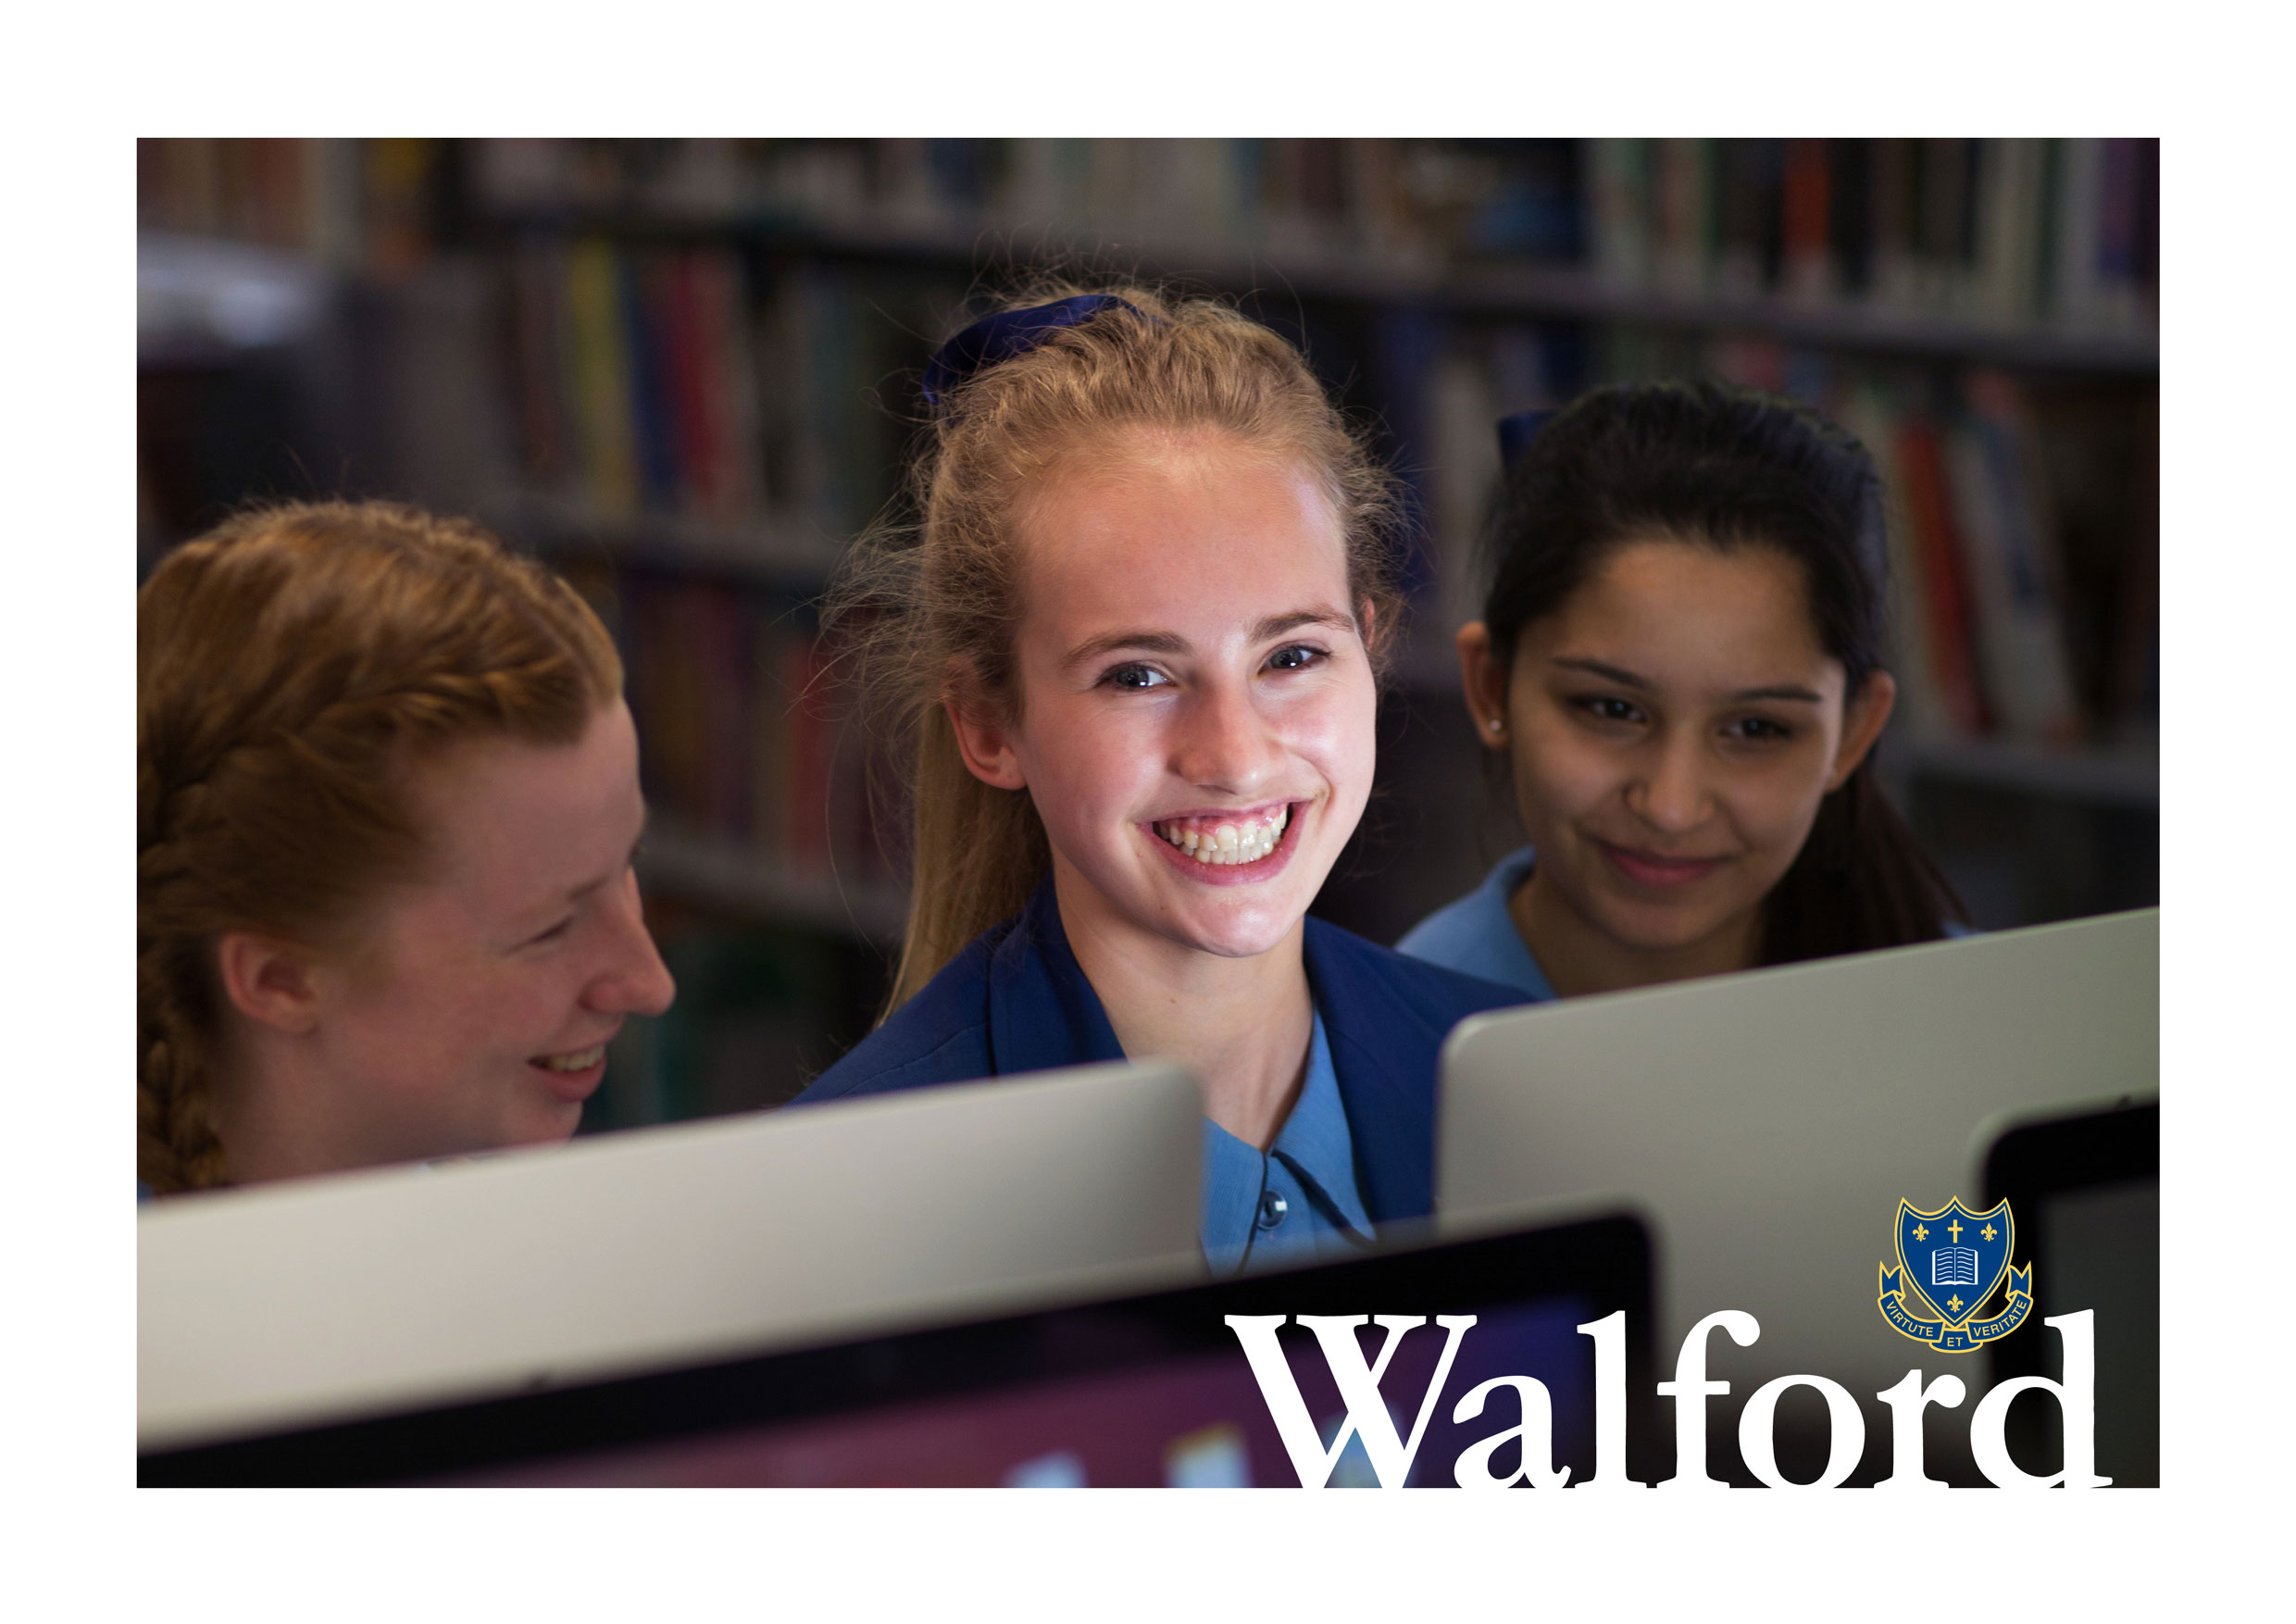 WALFORD-BRANDING-IMAGES_17